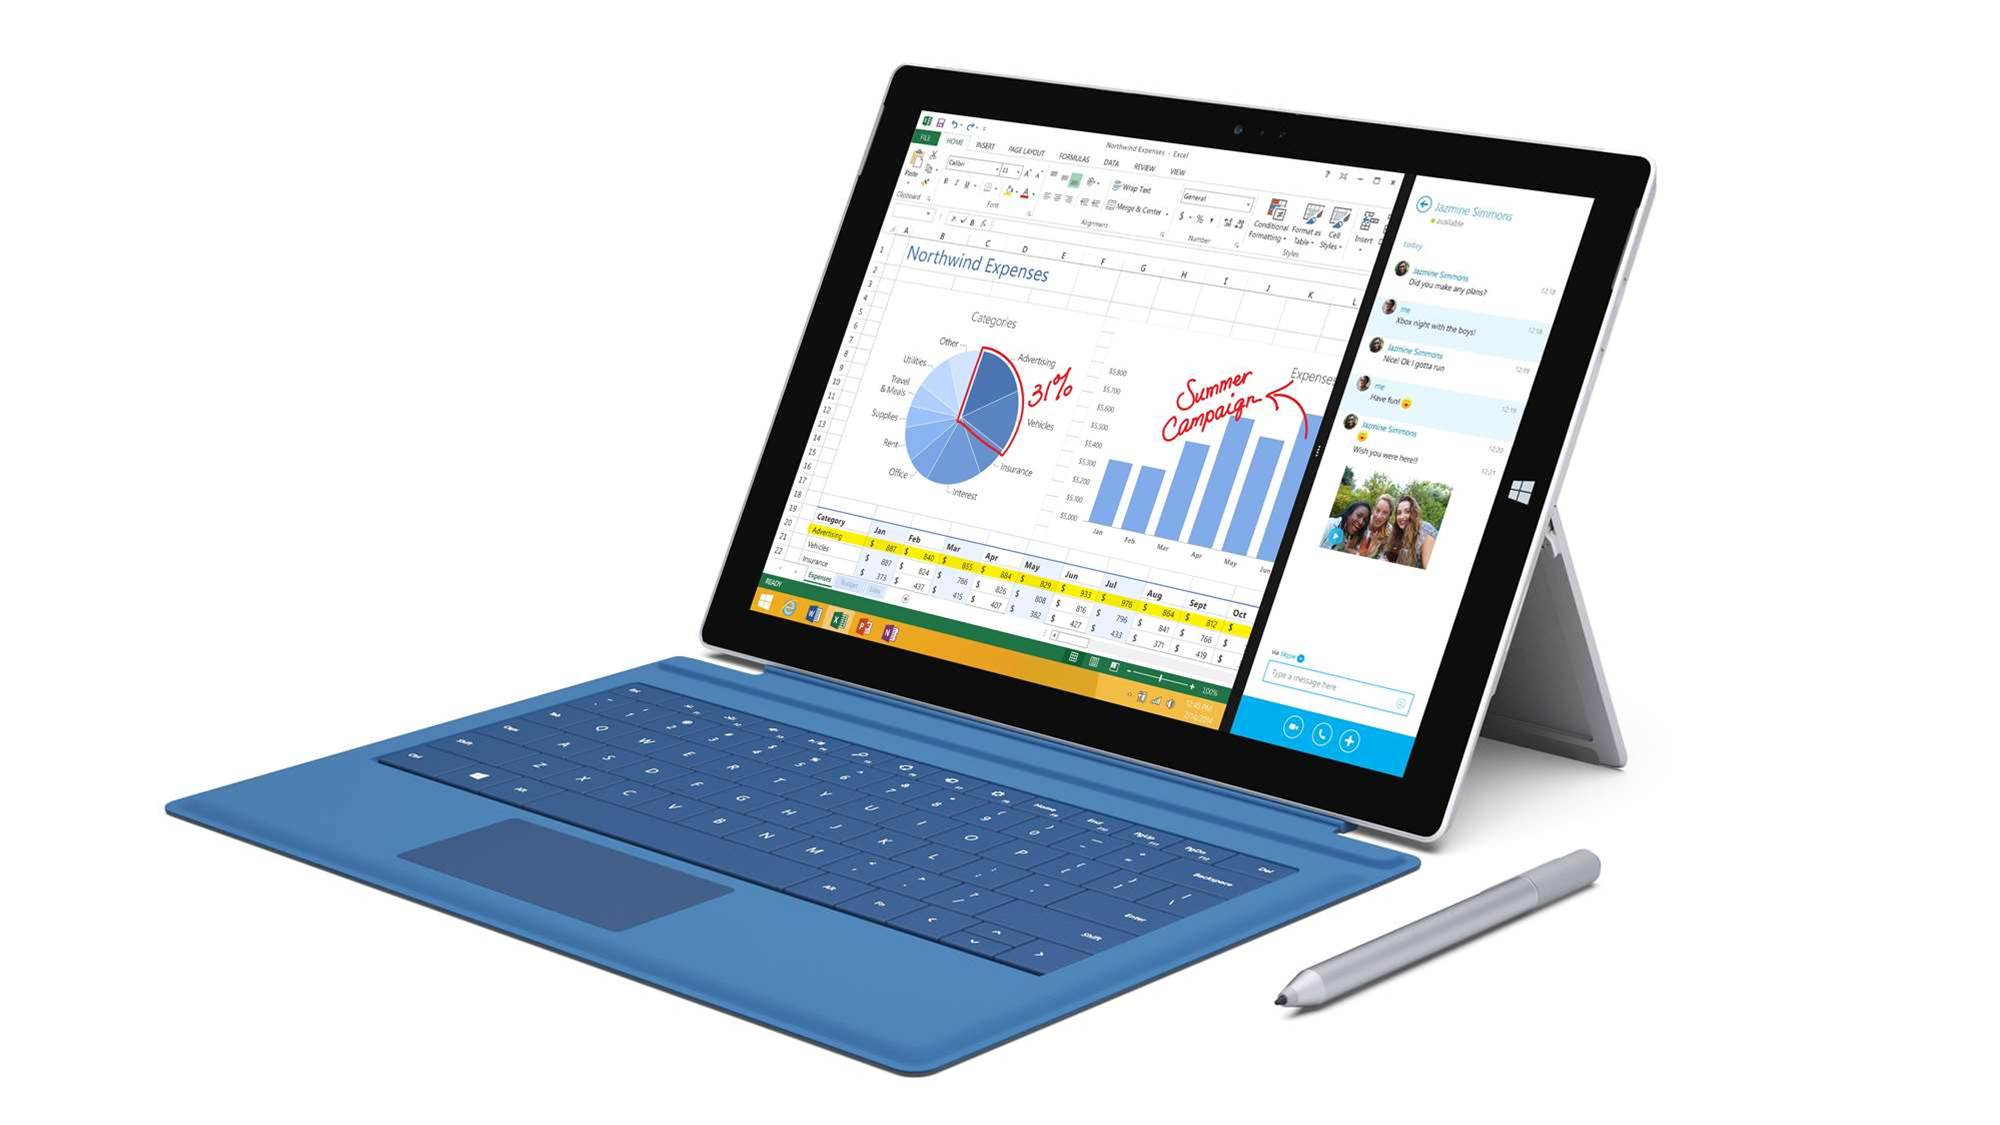 Review: Microsoft Surface Pro 3